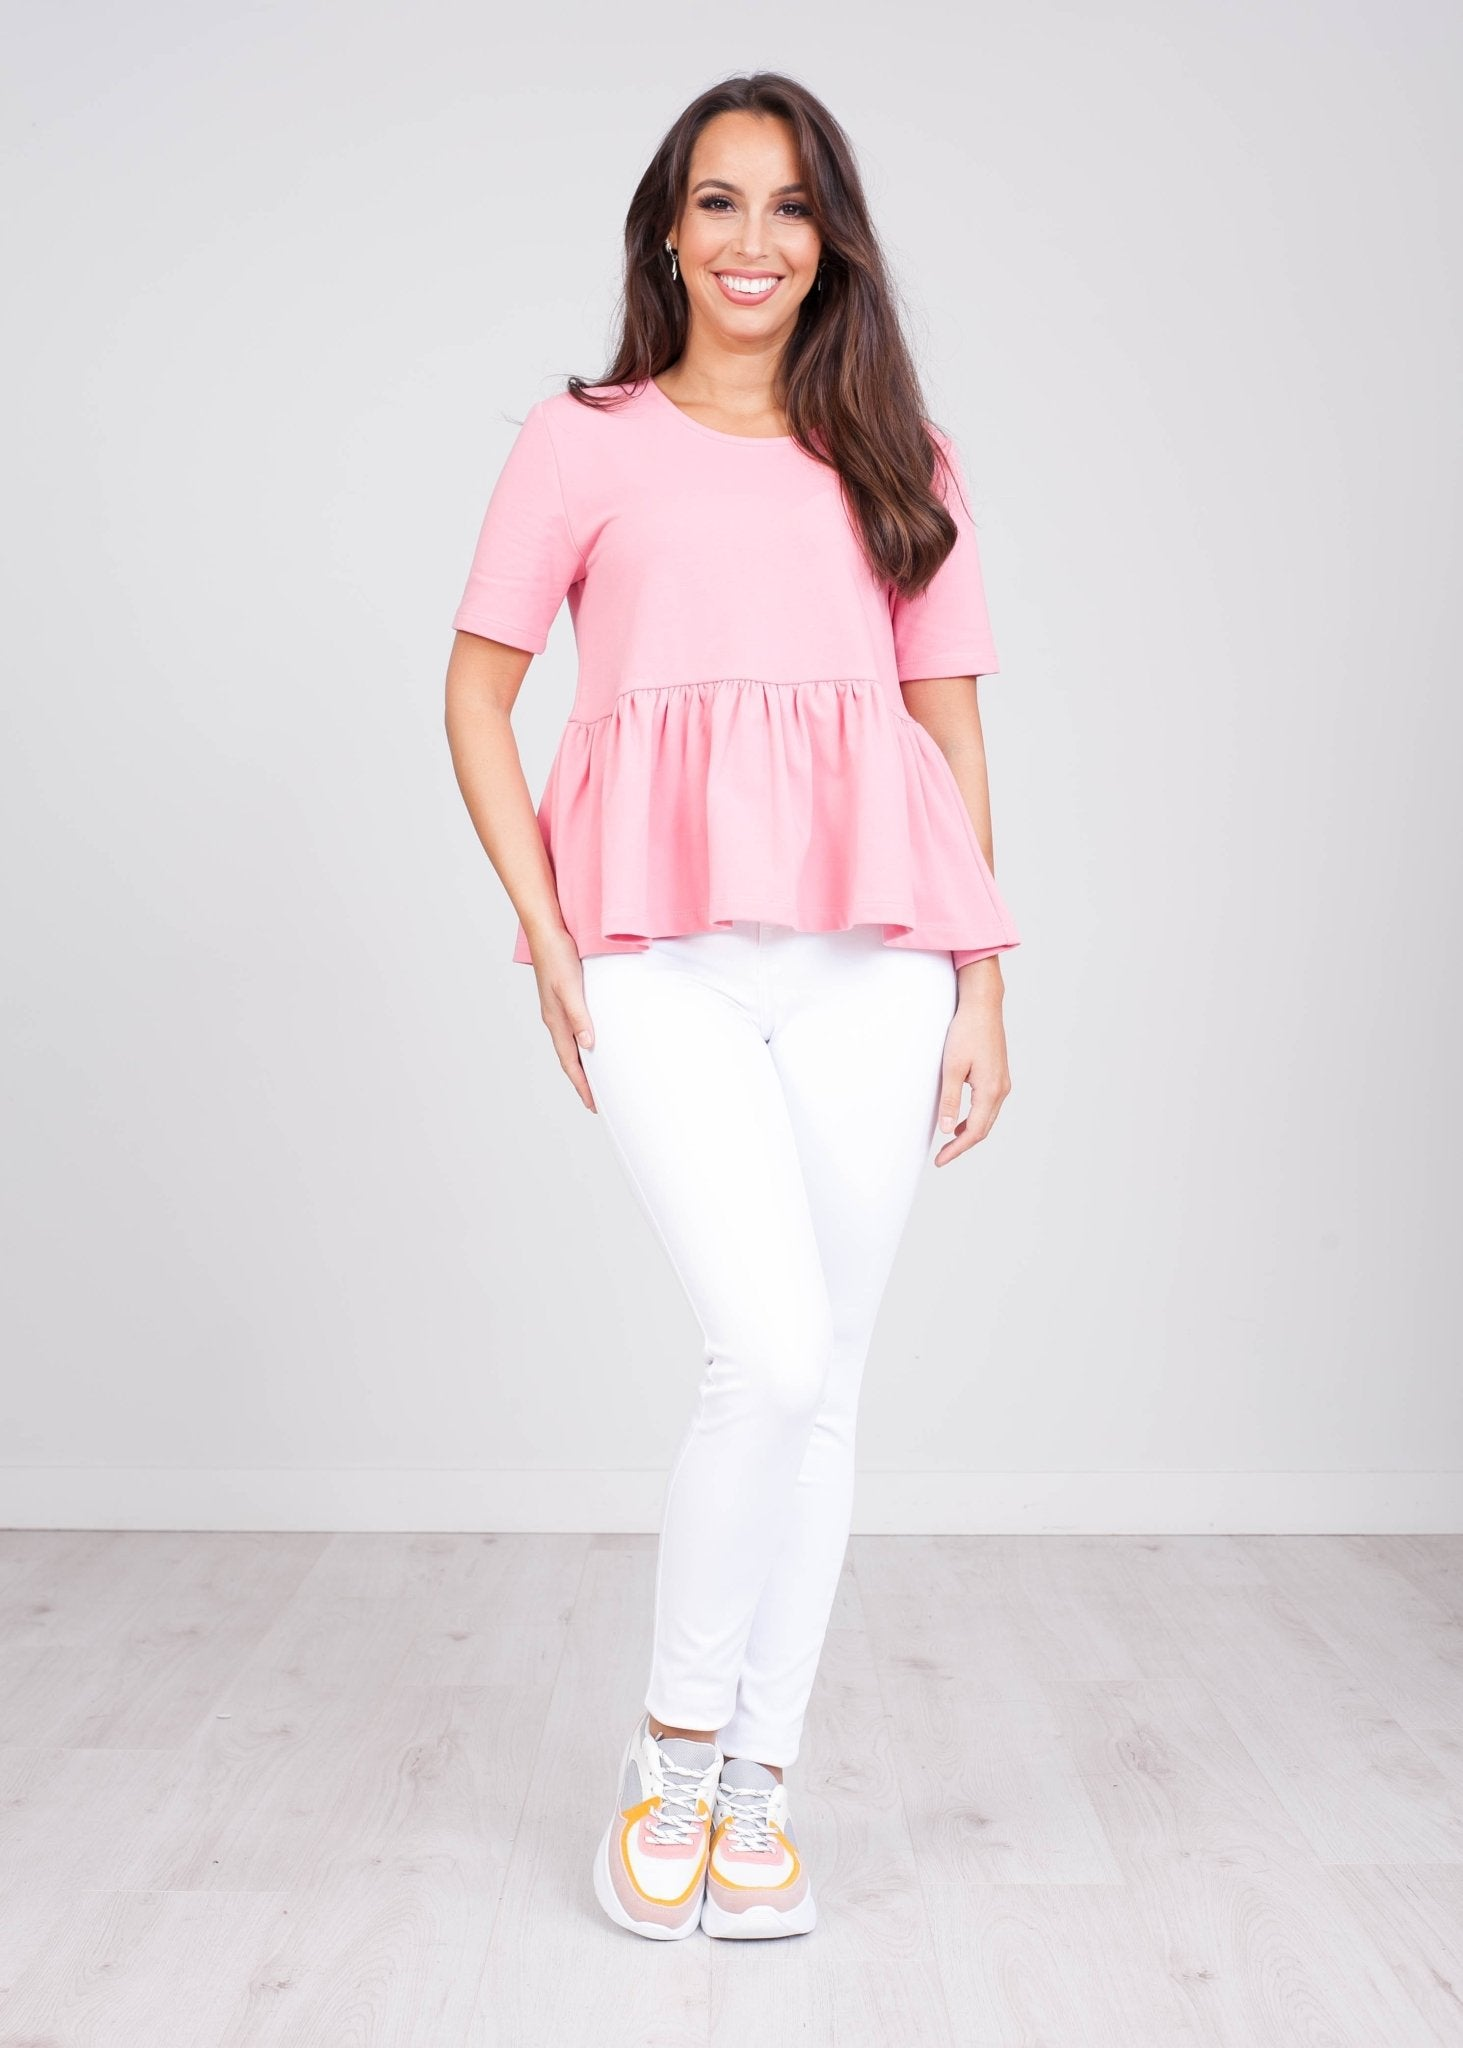 Charlee Pink Peplum Top - The Walk in Wardrobe